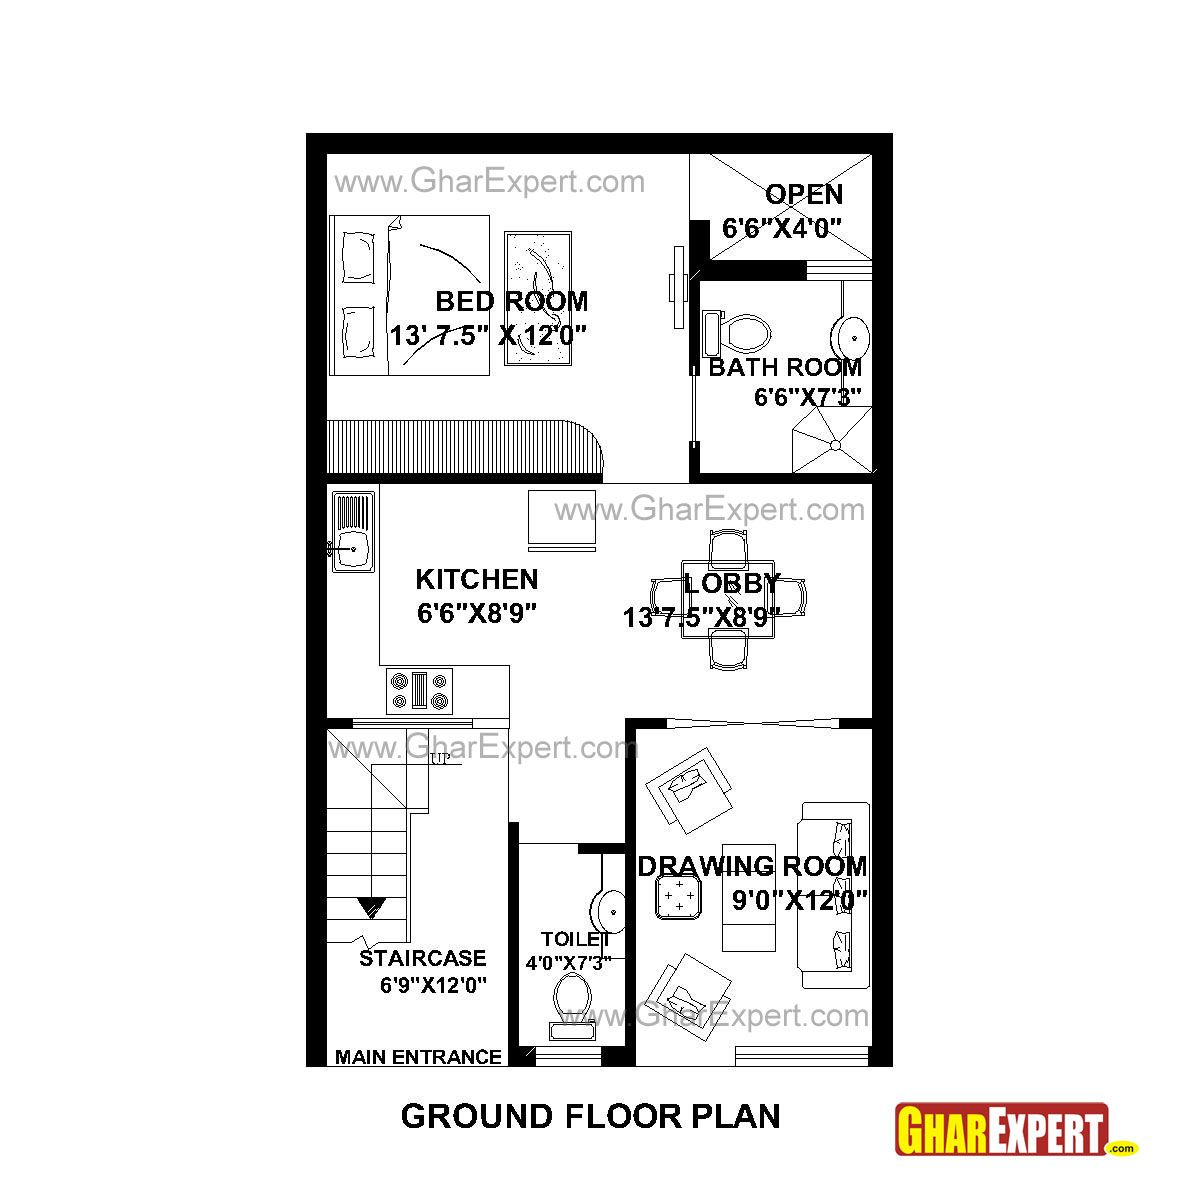 House Plan For 22 Feet By 35 Feet Plot Plot Size 86 Square Yards Gharexpert Com Square House Plans Basement House Plans House Plans With Pictures